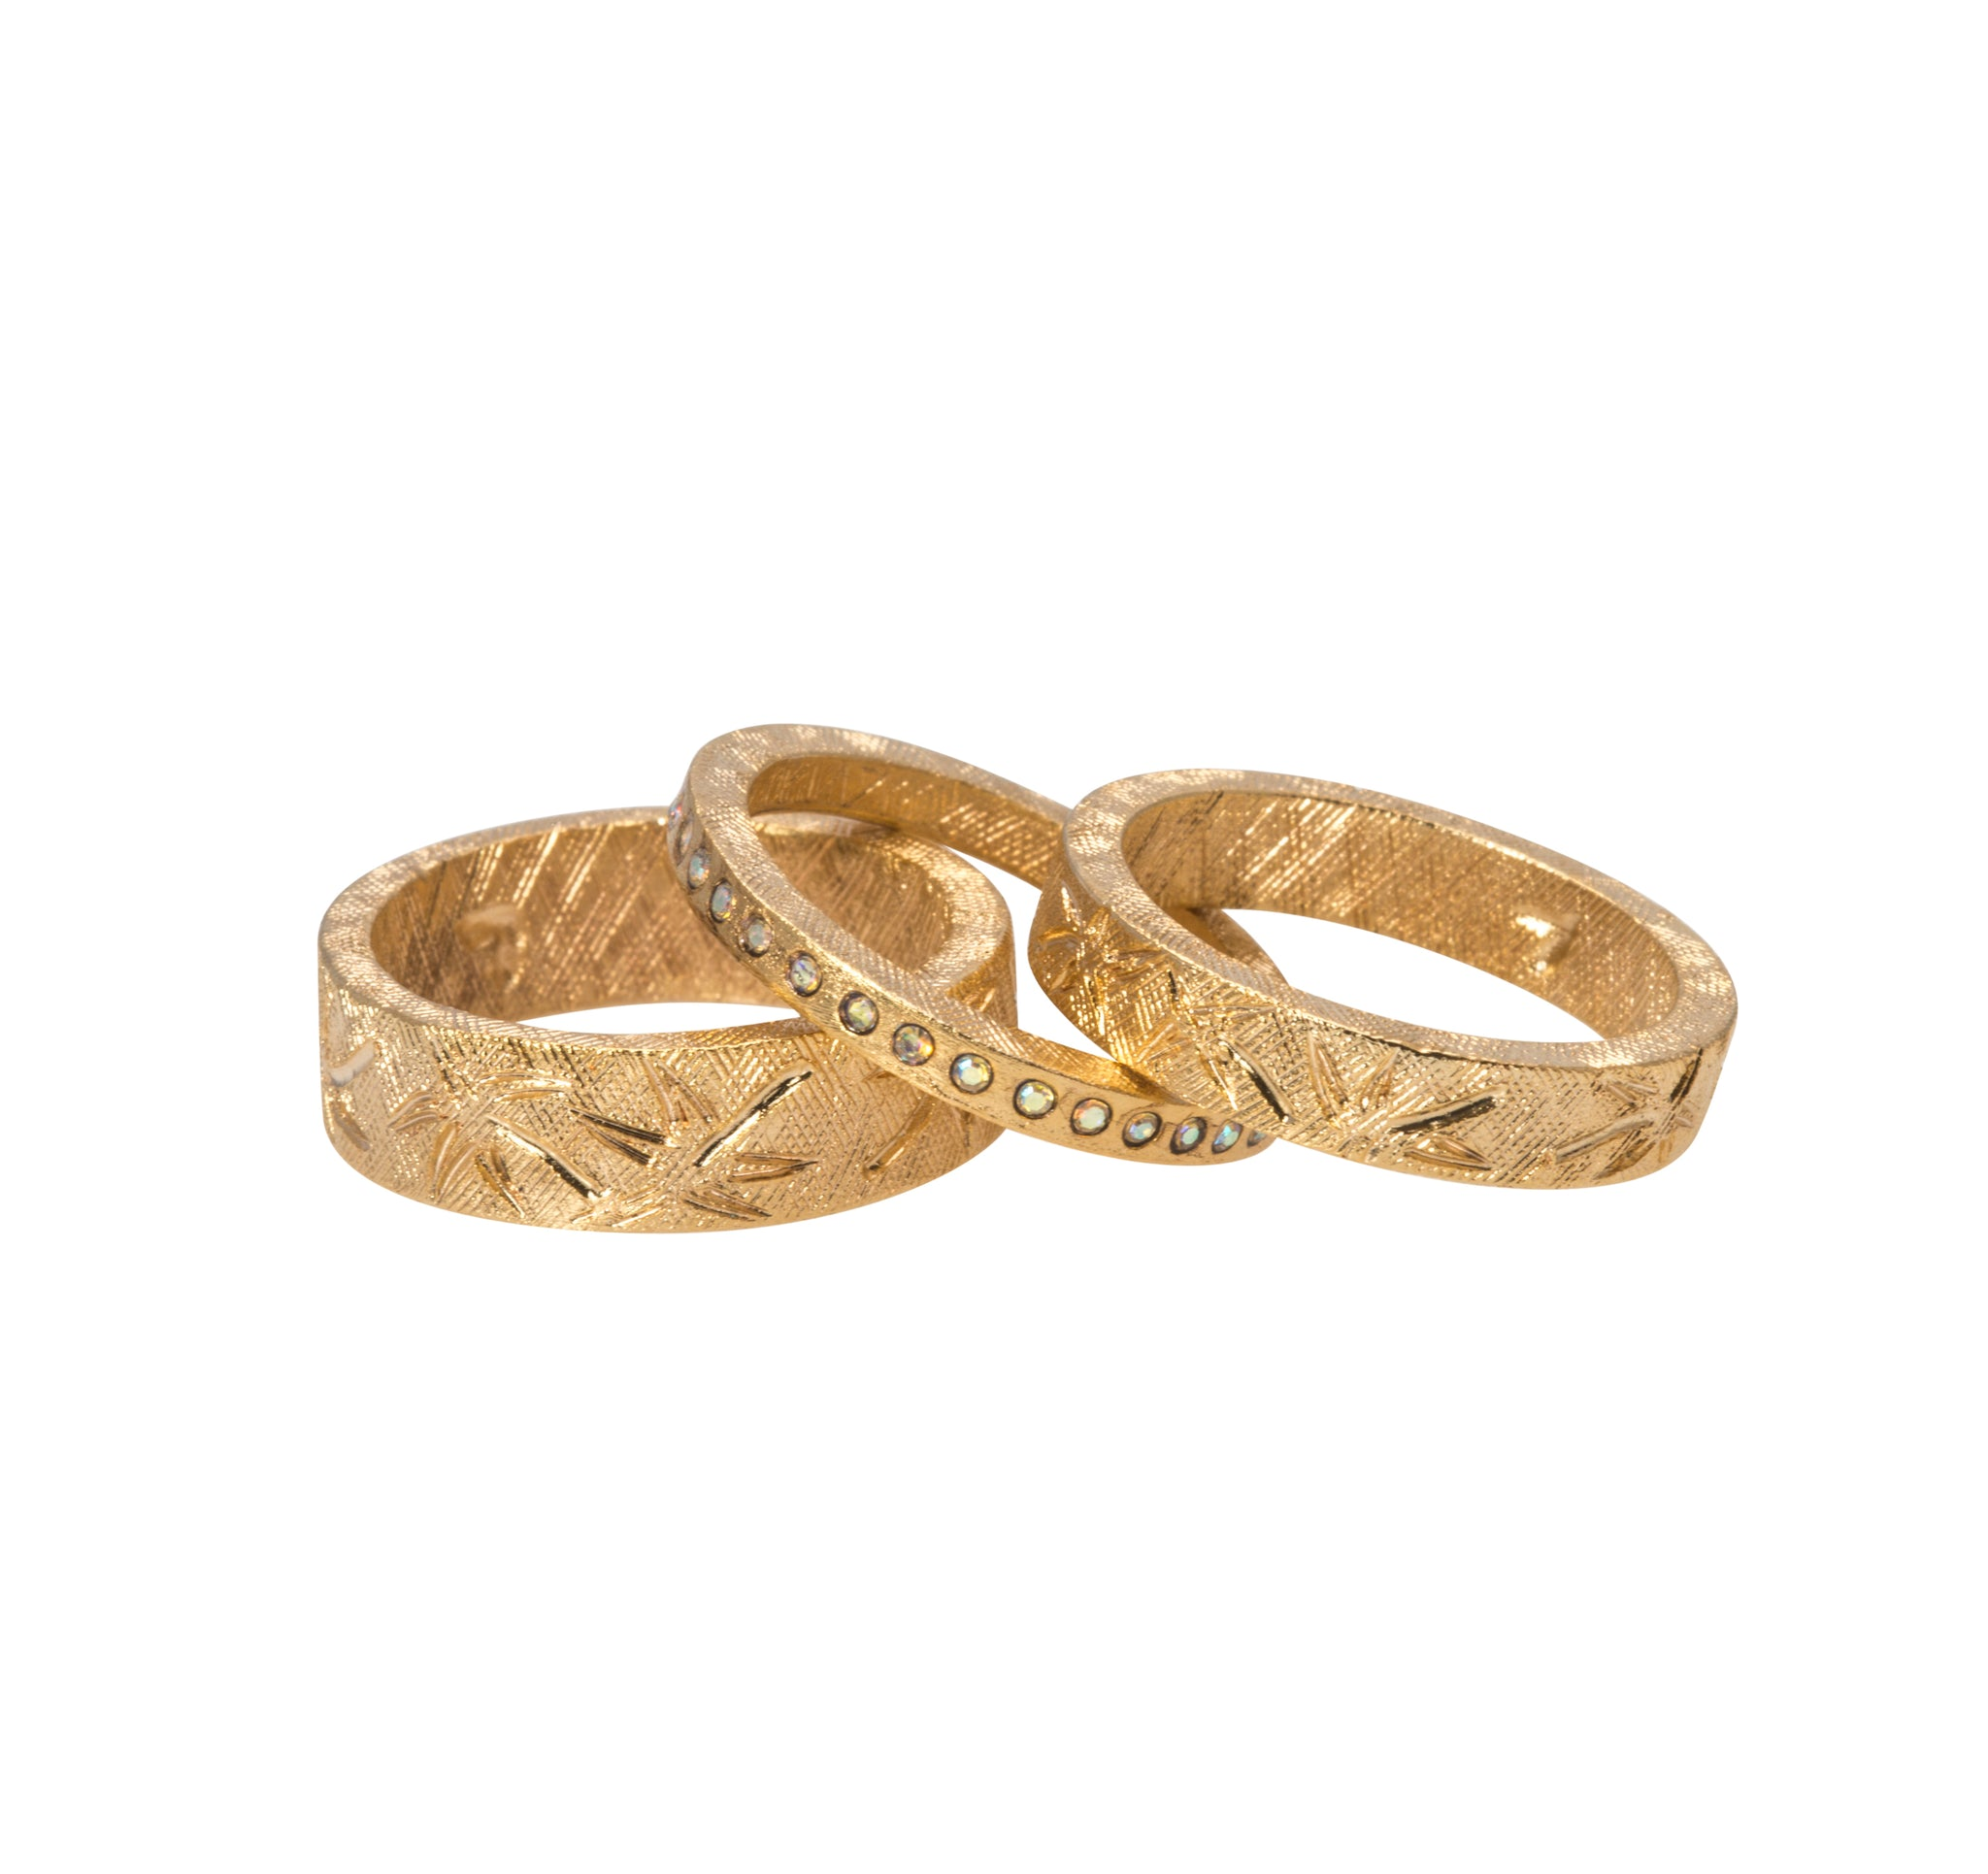 Goldbug Palmetto Textured Bands